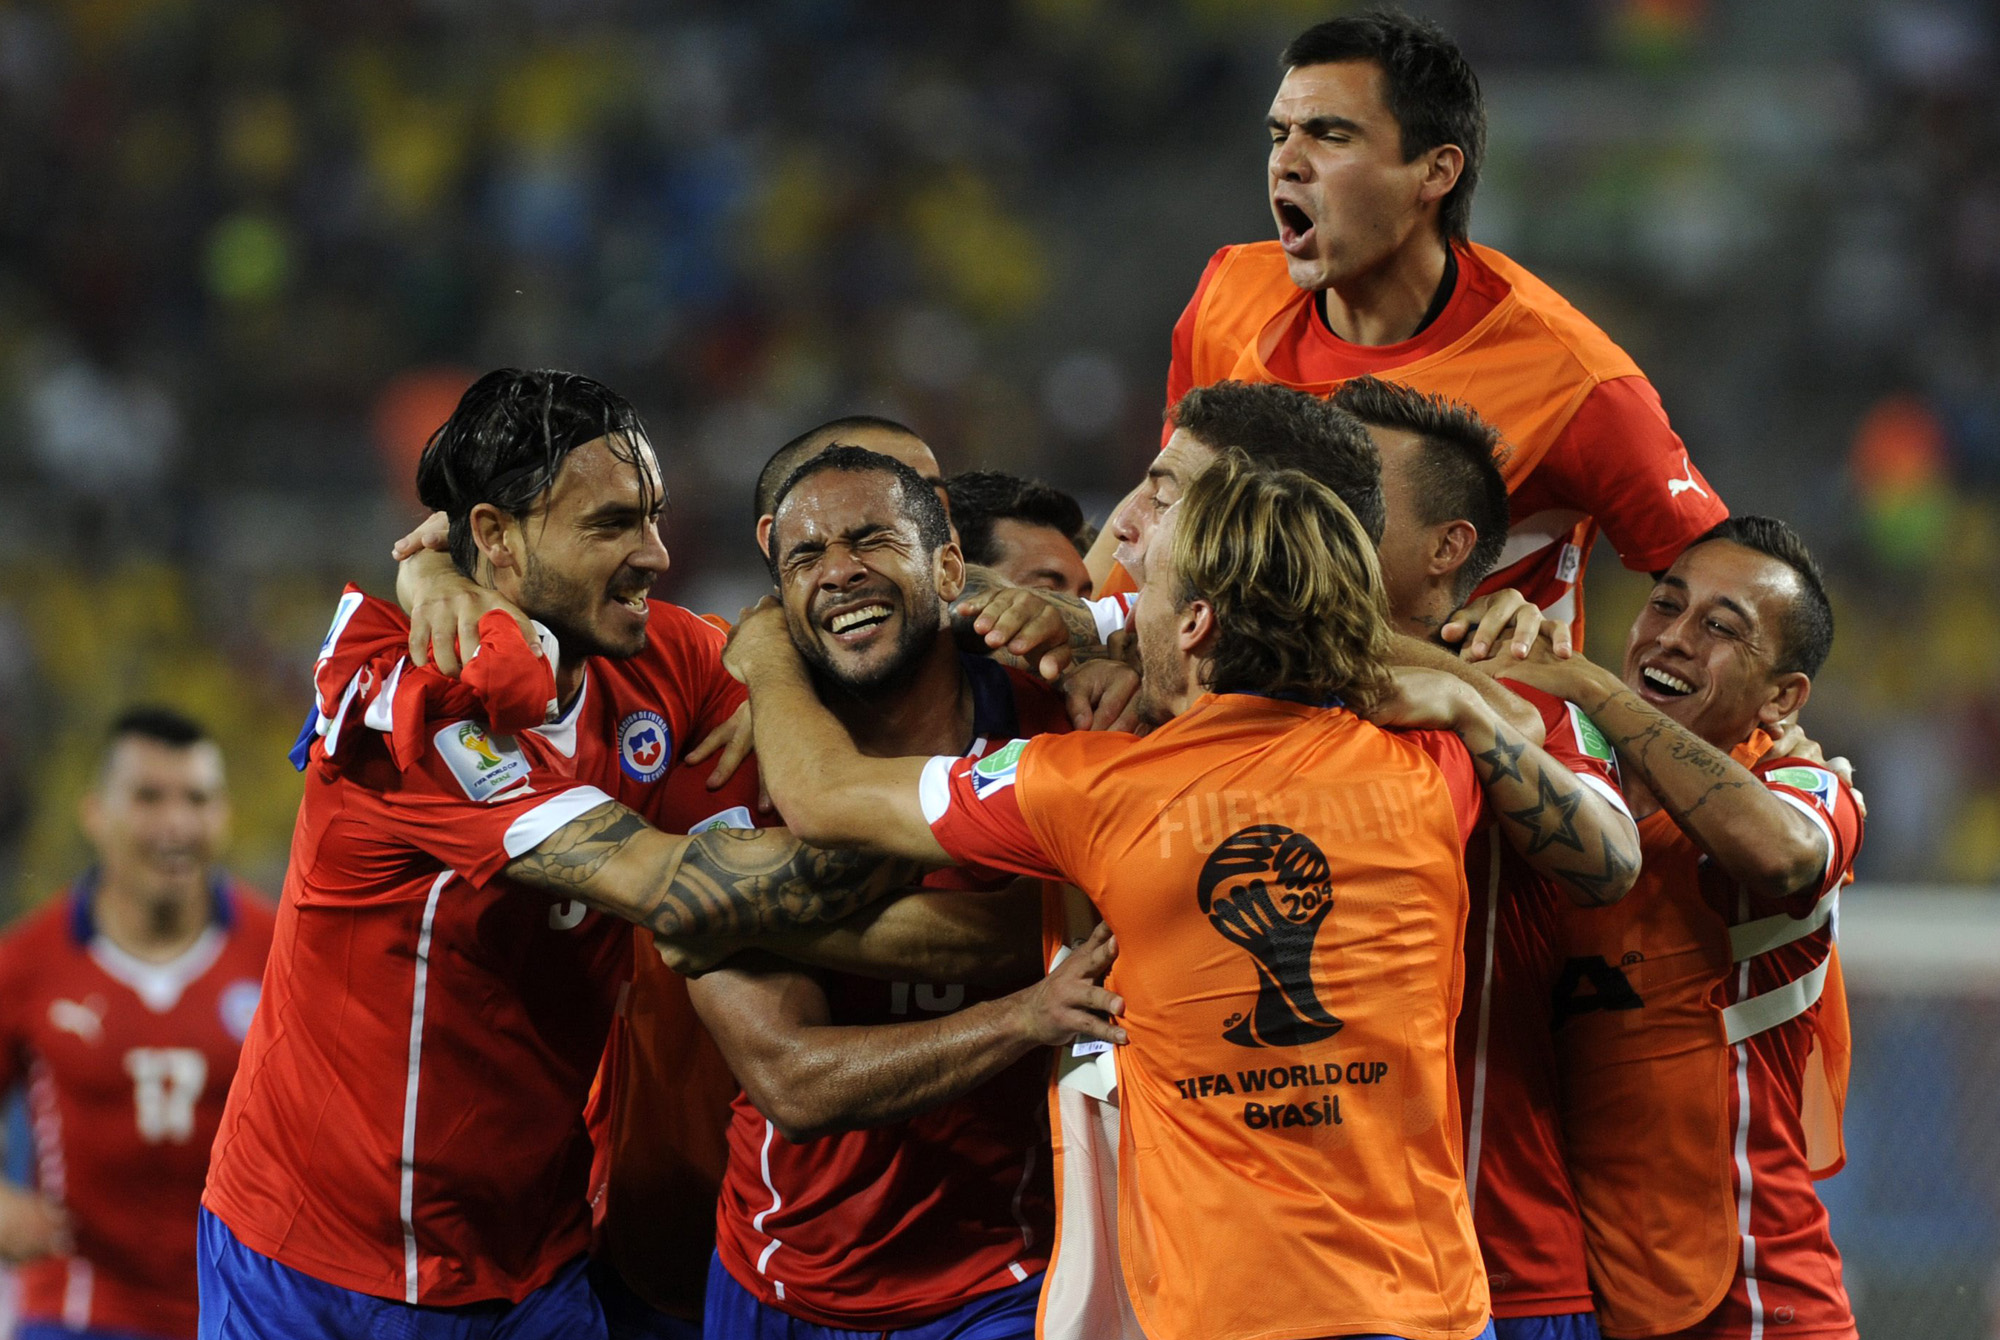 Chile 2014 World Cup